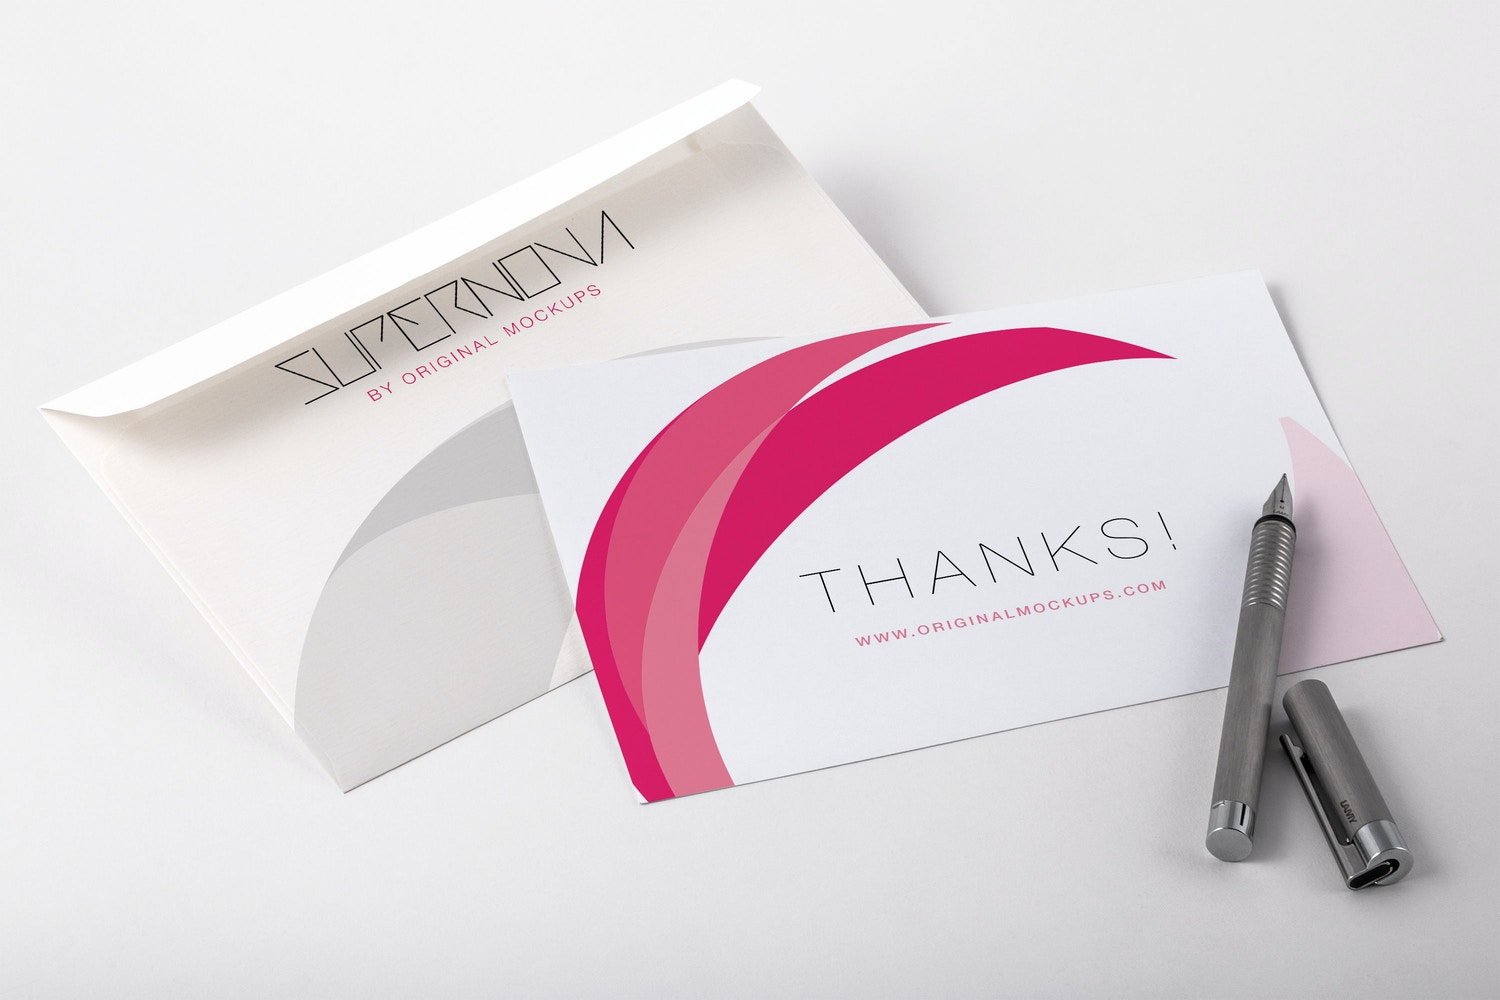 Thank You Card PSD Mockup 01 por Original Mockups en Original Mockups